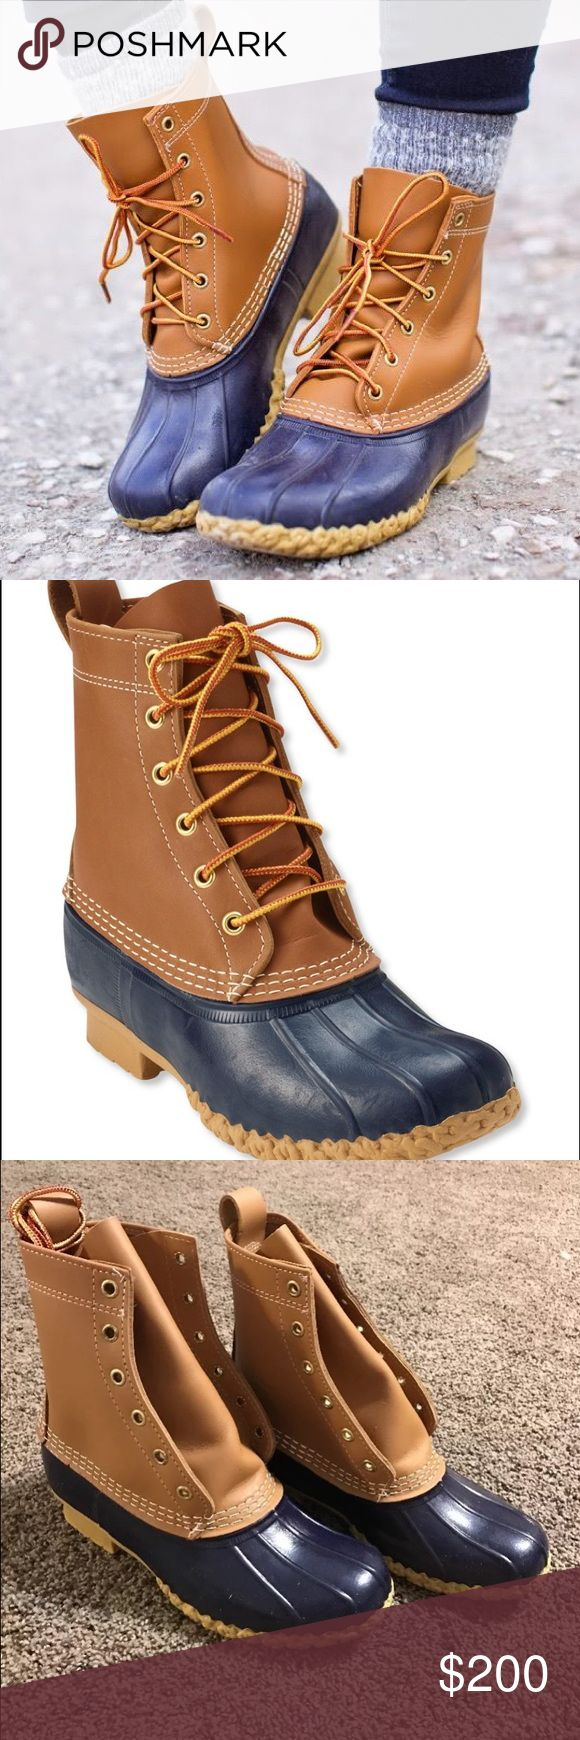 LL Bean Boots Size 7 Brand new, never worn, not even laced yet, size 7 medium, back ordered until 2017, brown leather and navy leather, perfect winter boot, water proof LL Bean Shoes Winter & Rain Boots